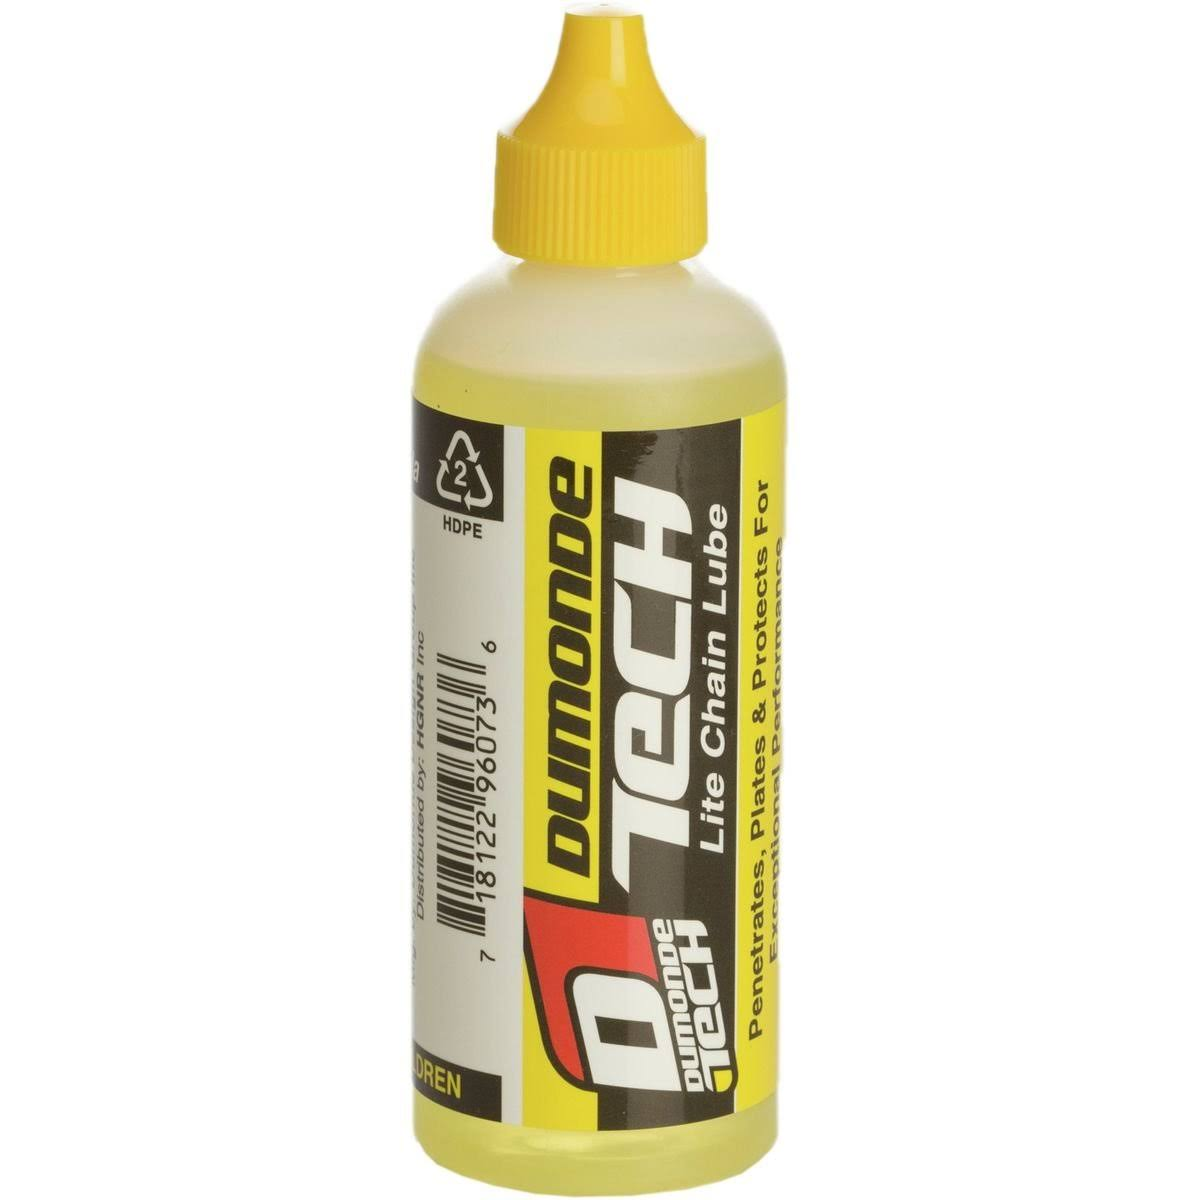 Dumonde Tech Lite Bicycle Chain Lube